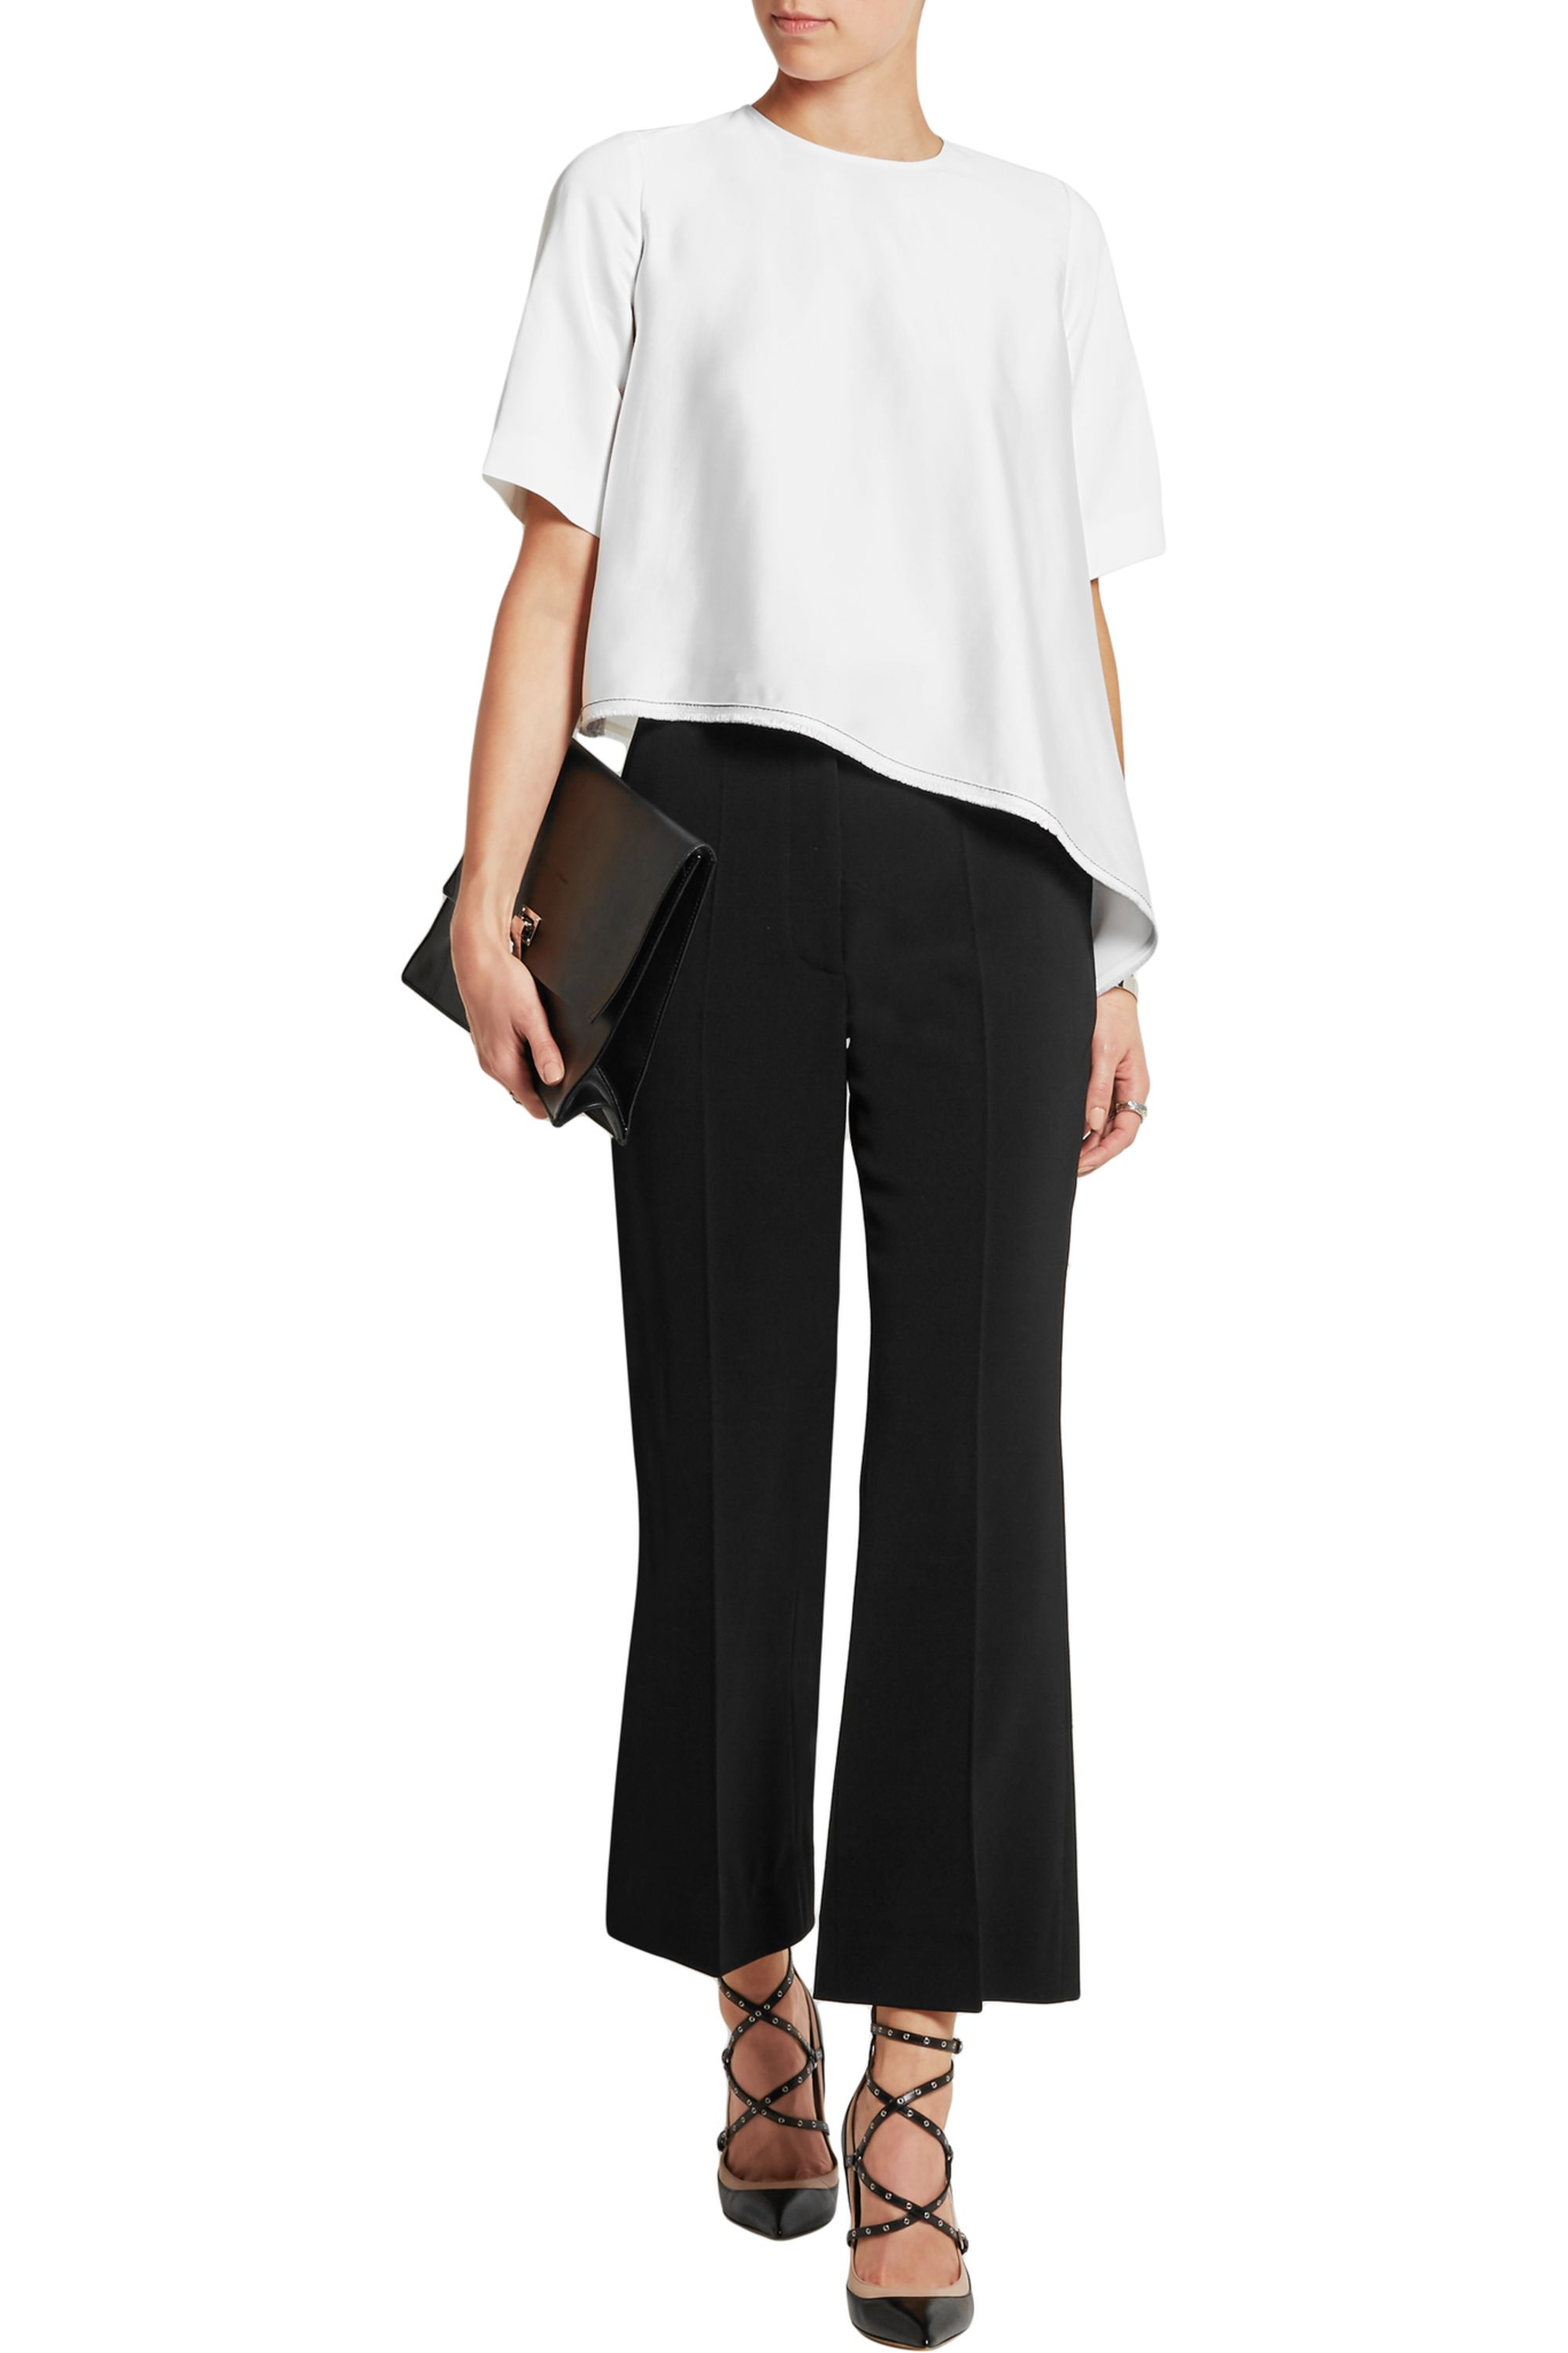 Vanessa Bruno Asymmetric satin top